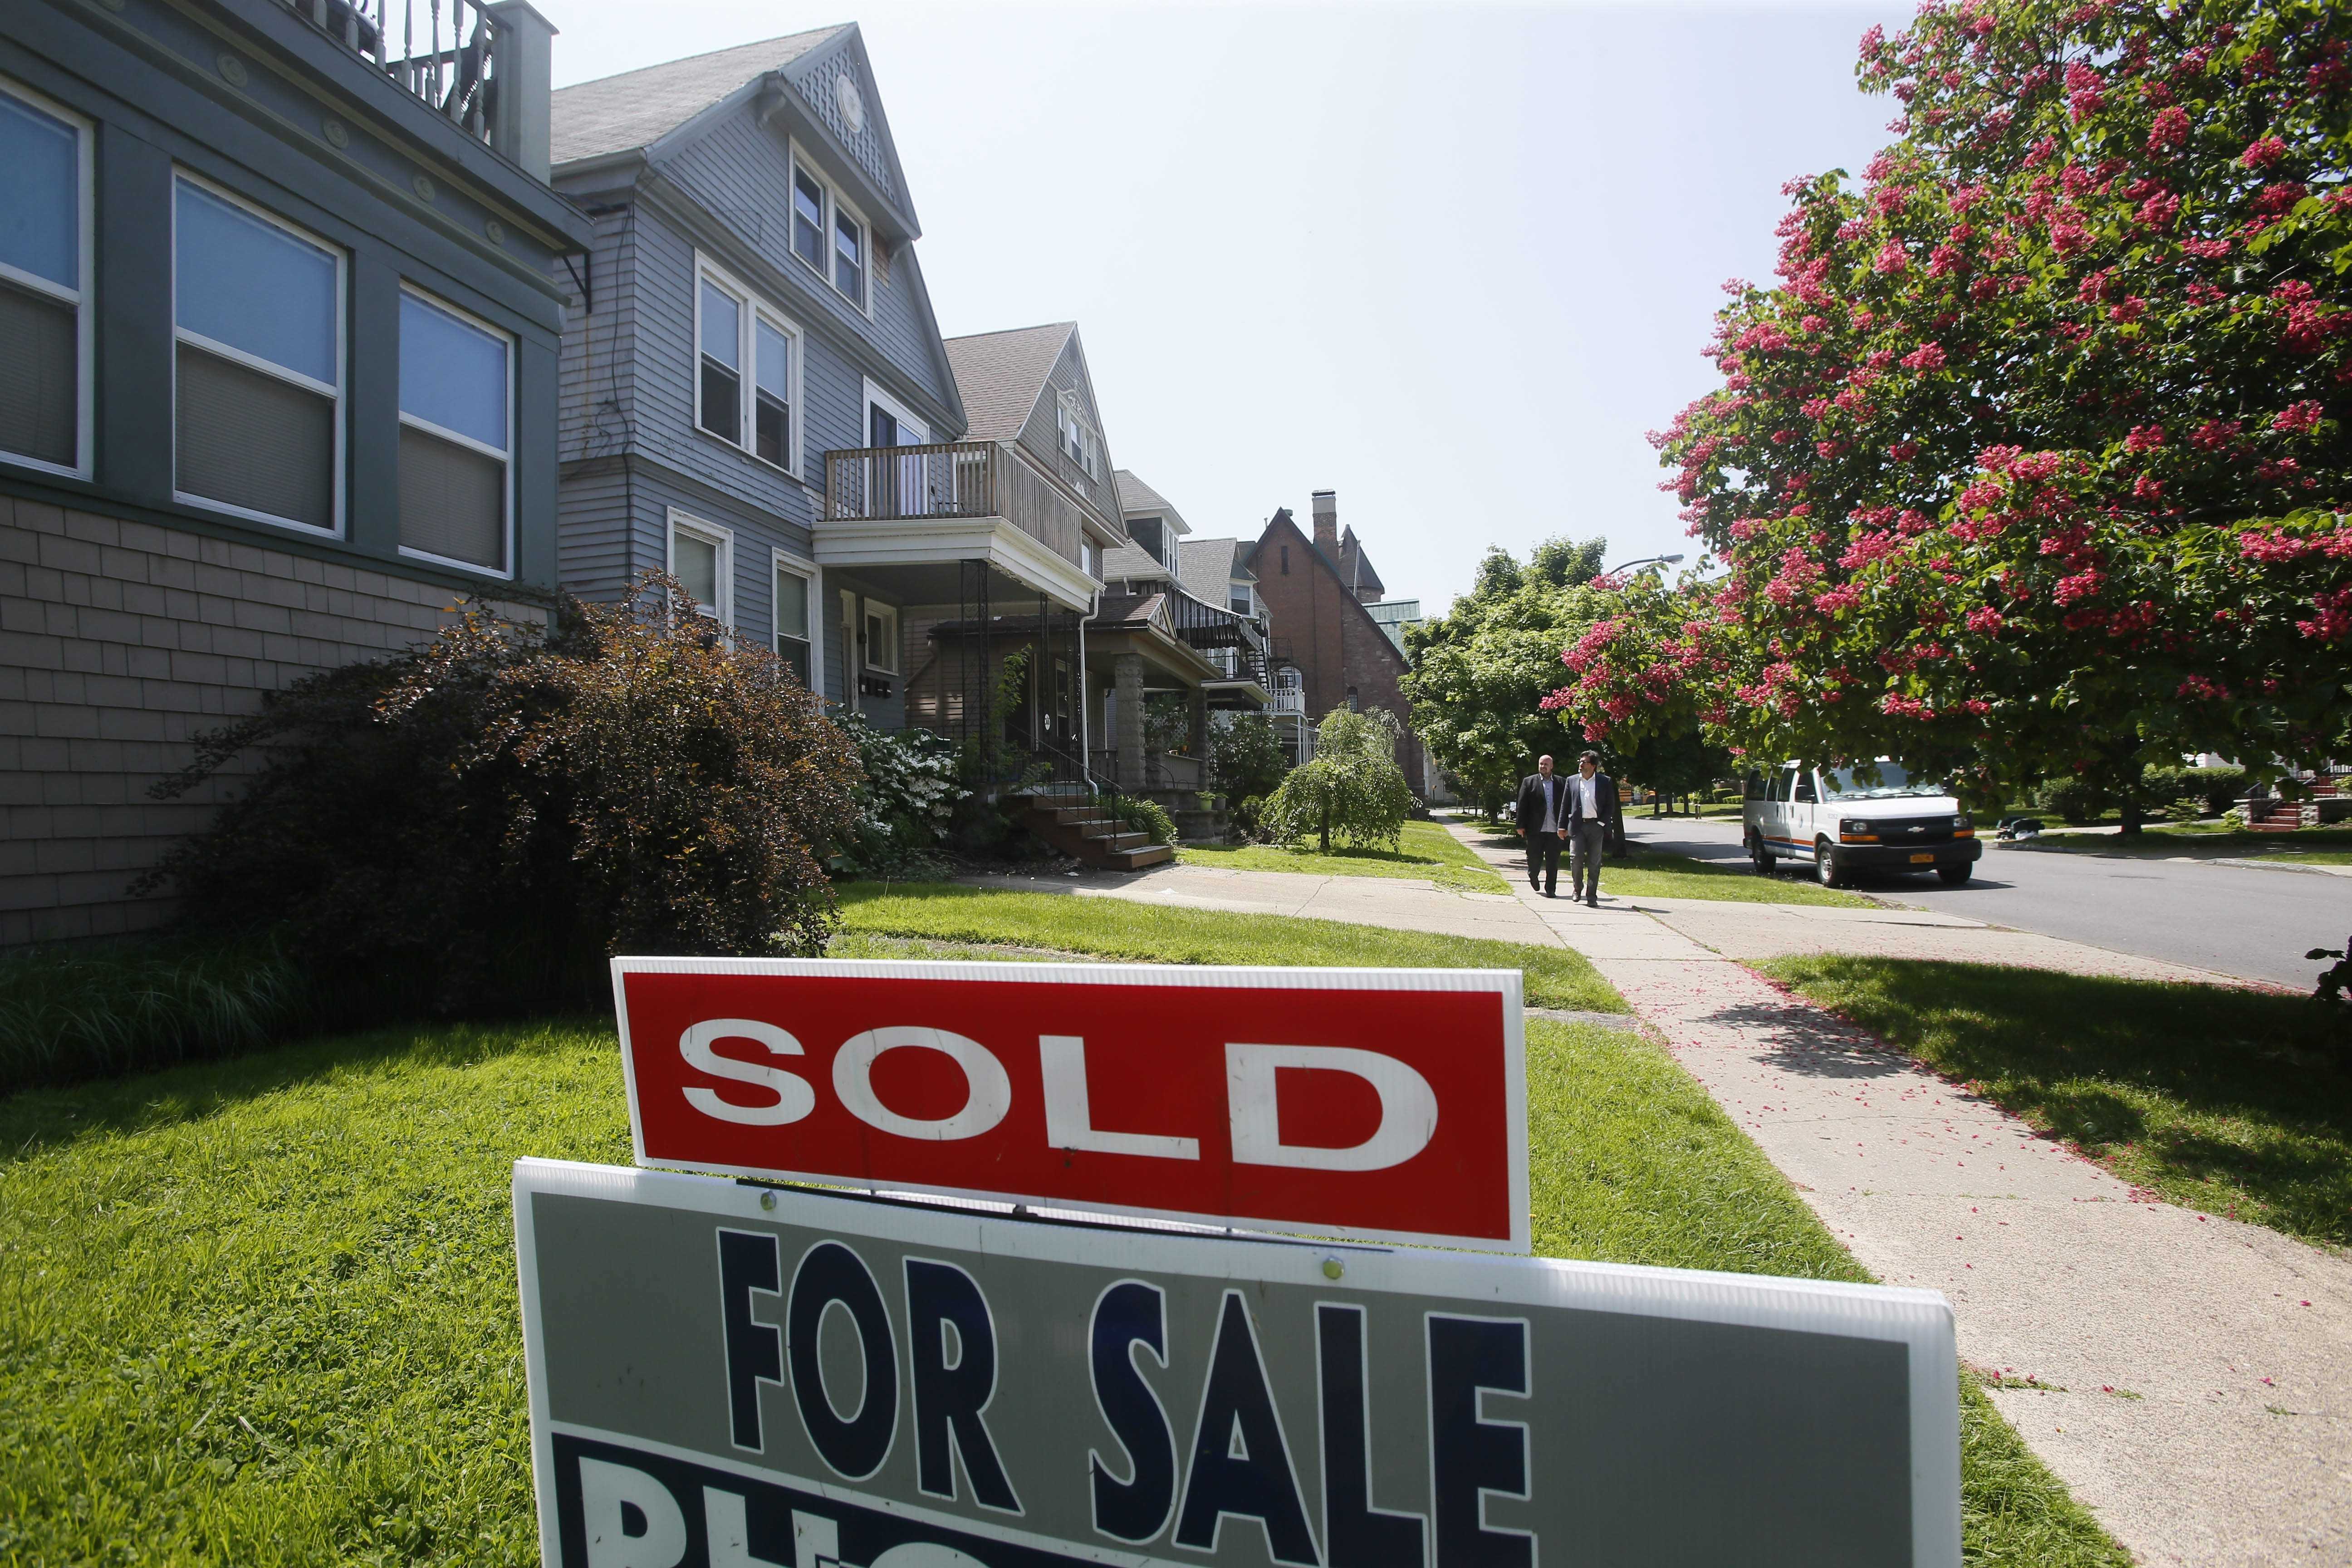 Brokers say that potential buyers are hot on the trail of new listings, especially in the City of Buffalo.